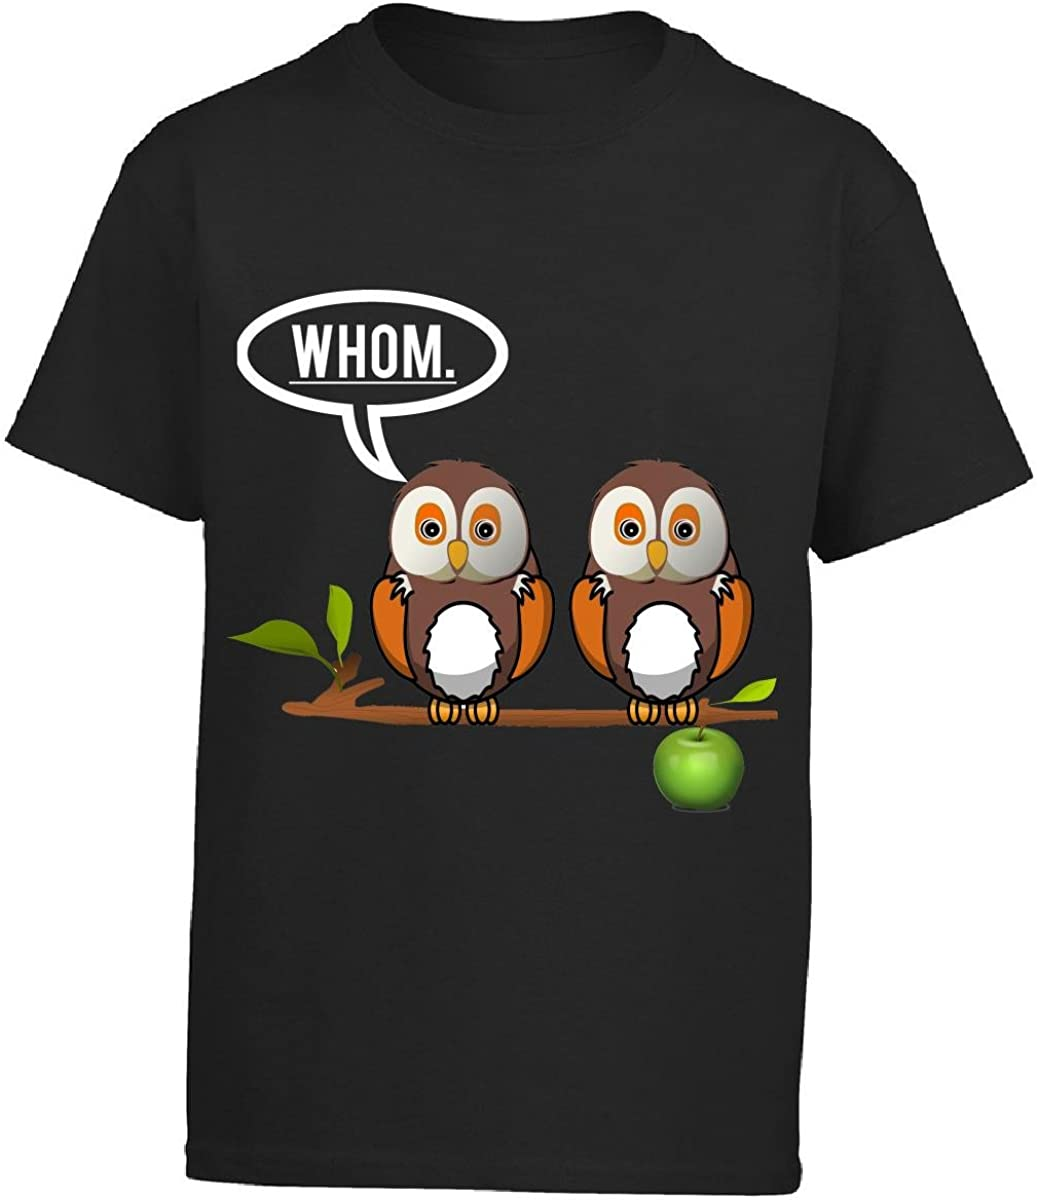 Whom Grammar Owl Proper Speach Teacher Grammatically Correct Boy Boys T-shirt